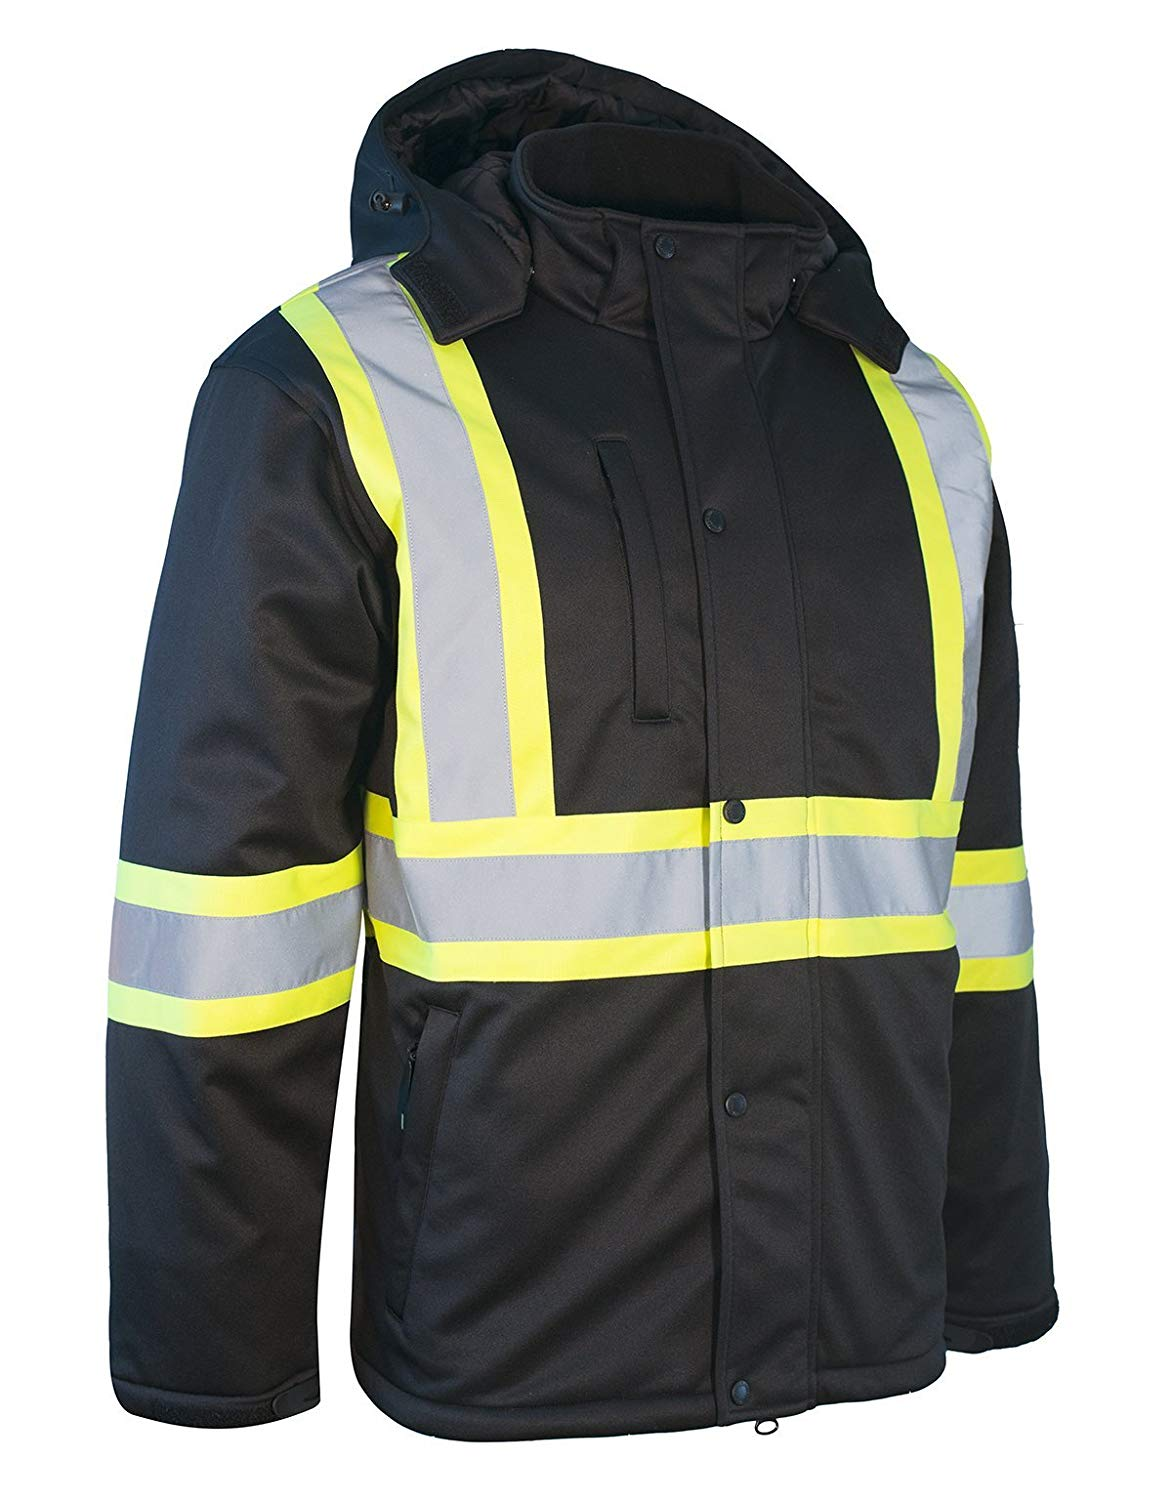 Forcefield Hi-Vis Re-Engineered Safety Softshell 023-EN149BK